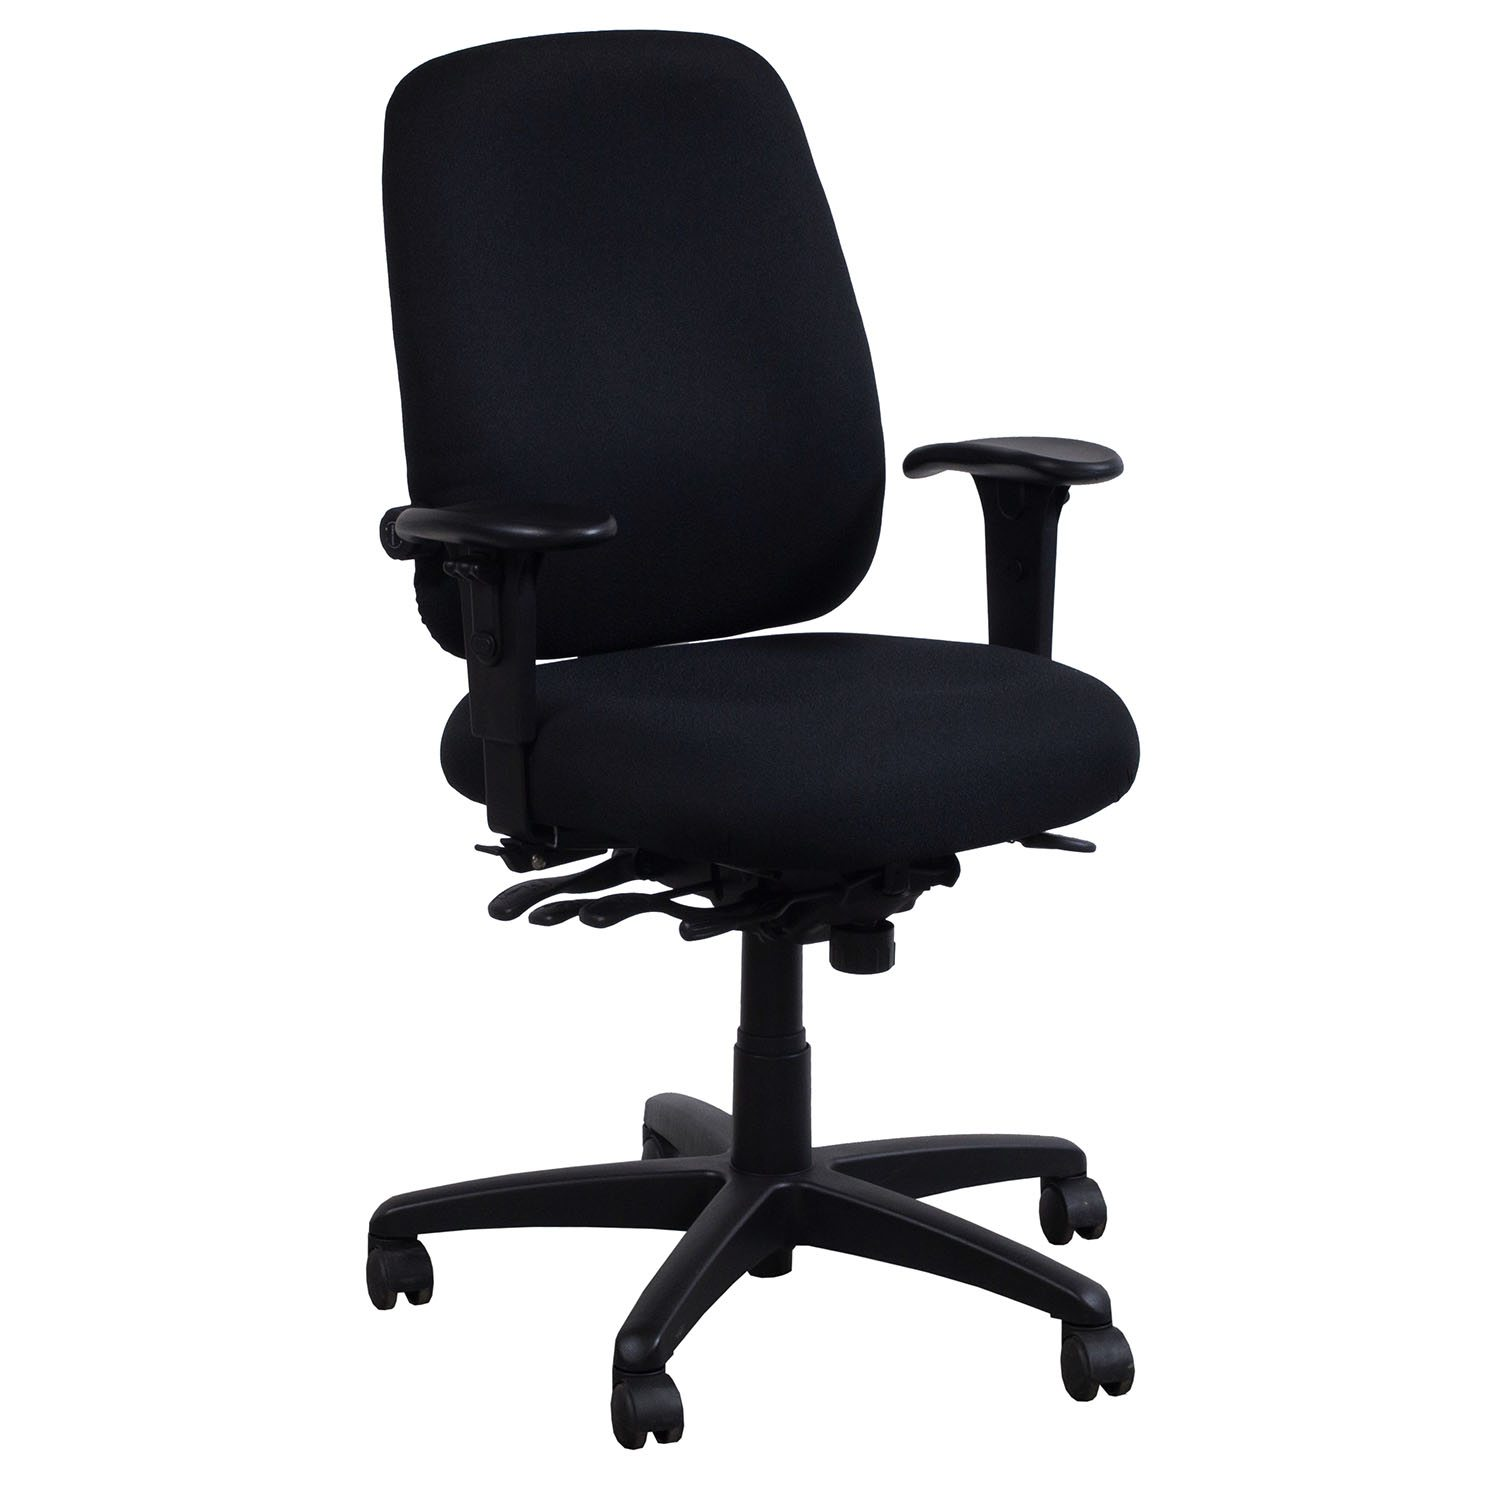 Office Master PT78 Used Task Chair ...  sc 1 st  National Office Interiors and Liquidators & Office Master PT78 Used Task Chair Black | National Office ...